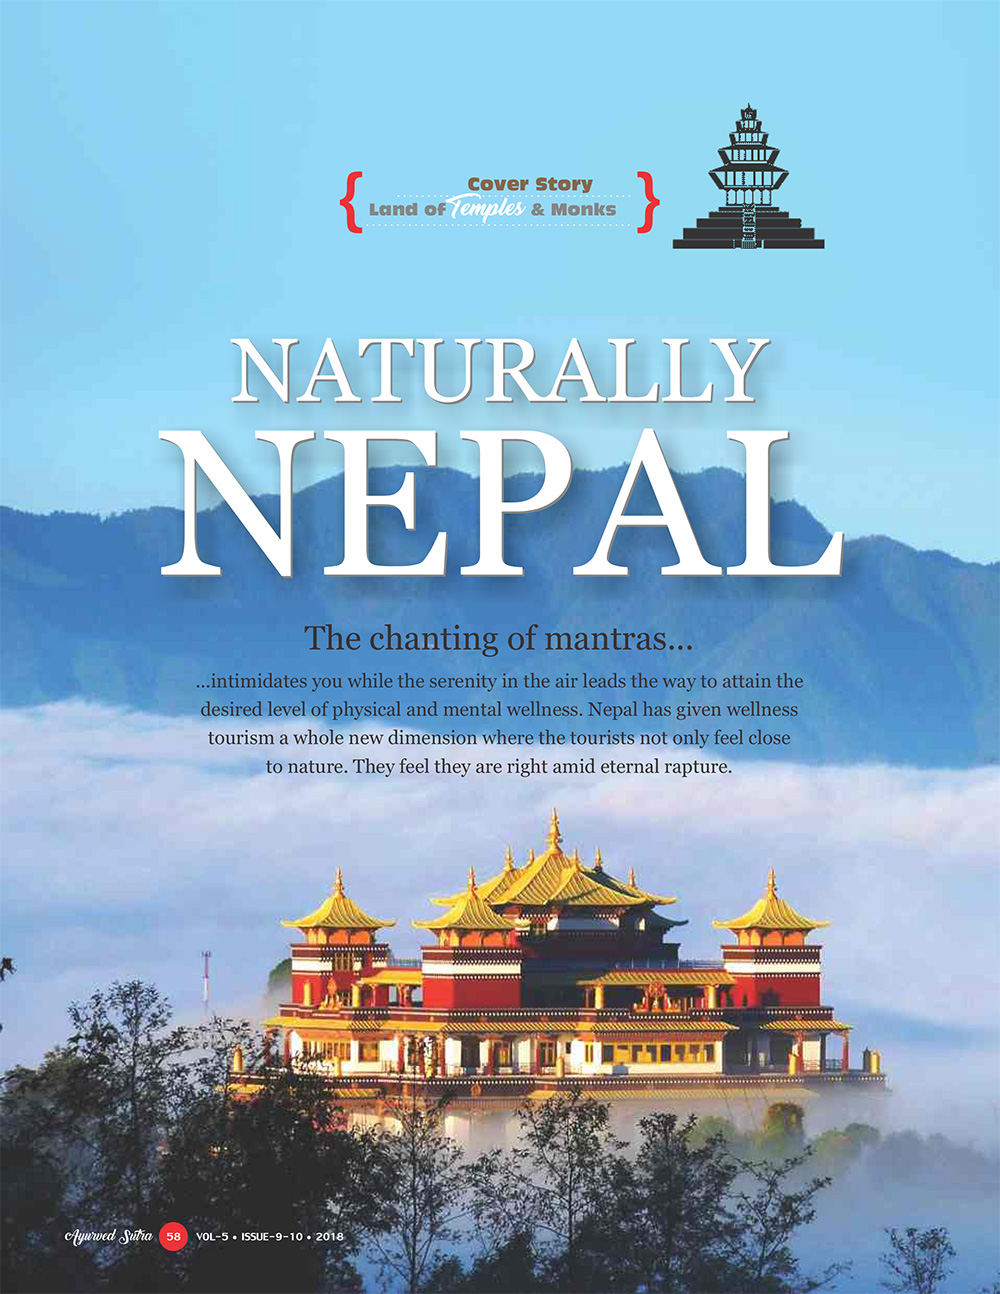 Ayurvedsutra Vol 05 issue 09 10 60 - Naturally Nepal